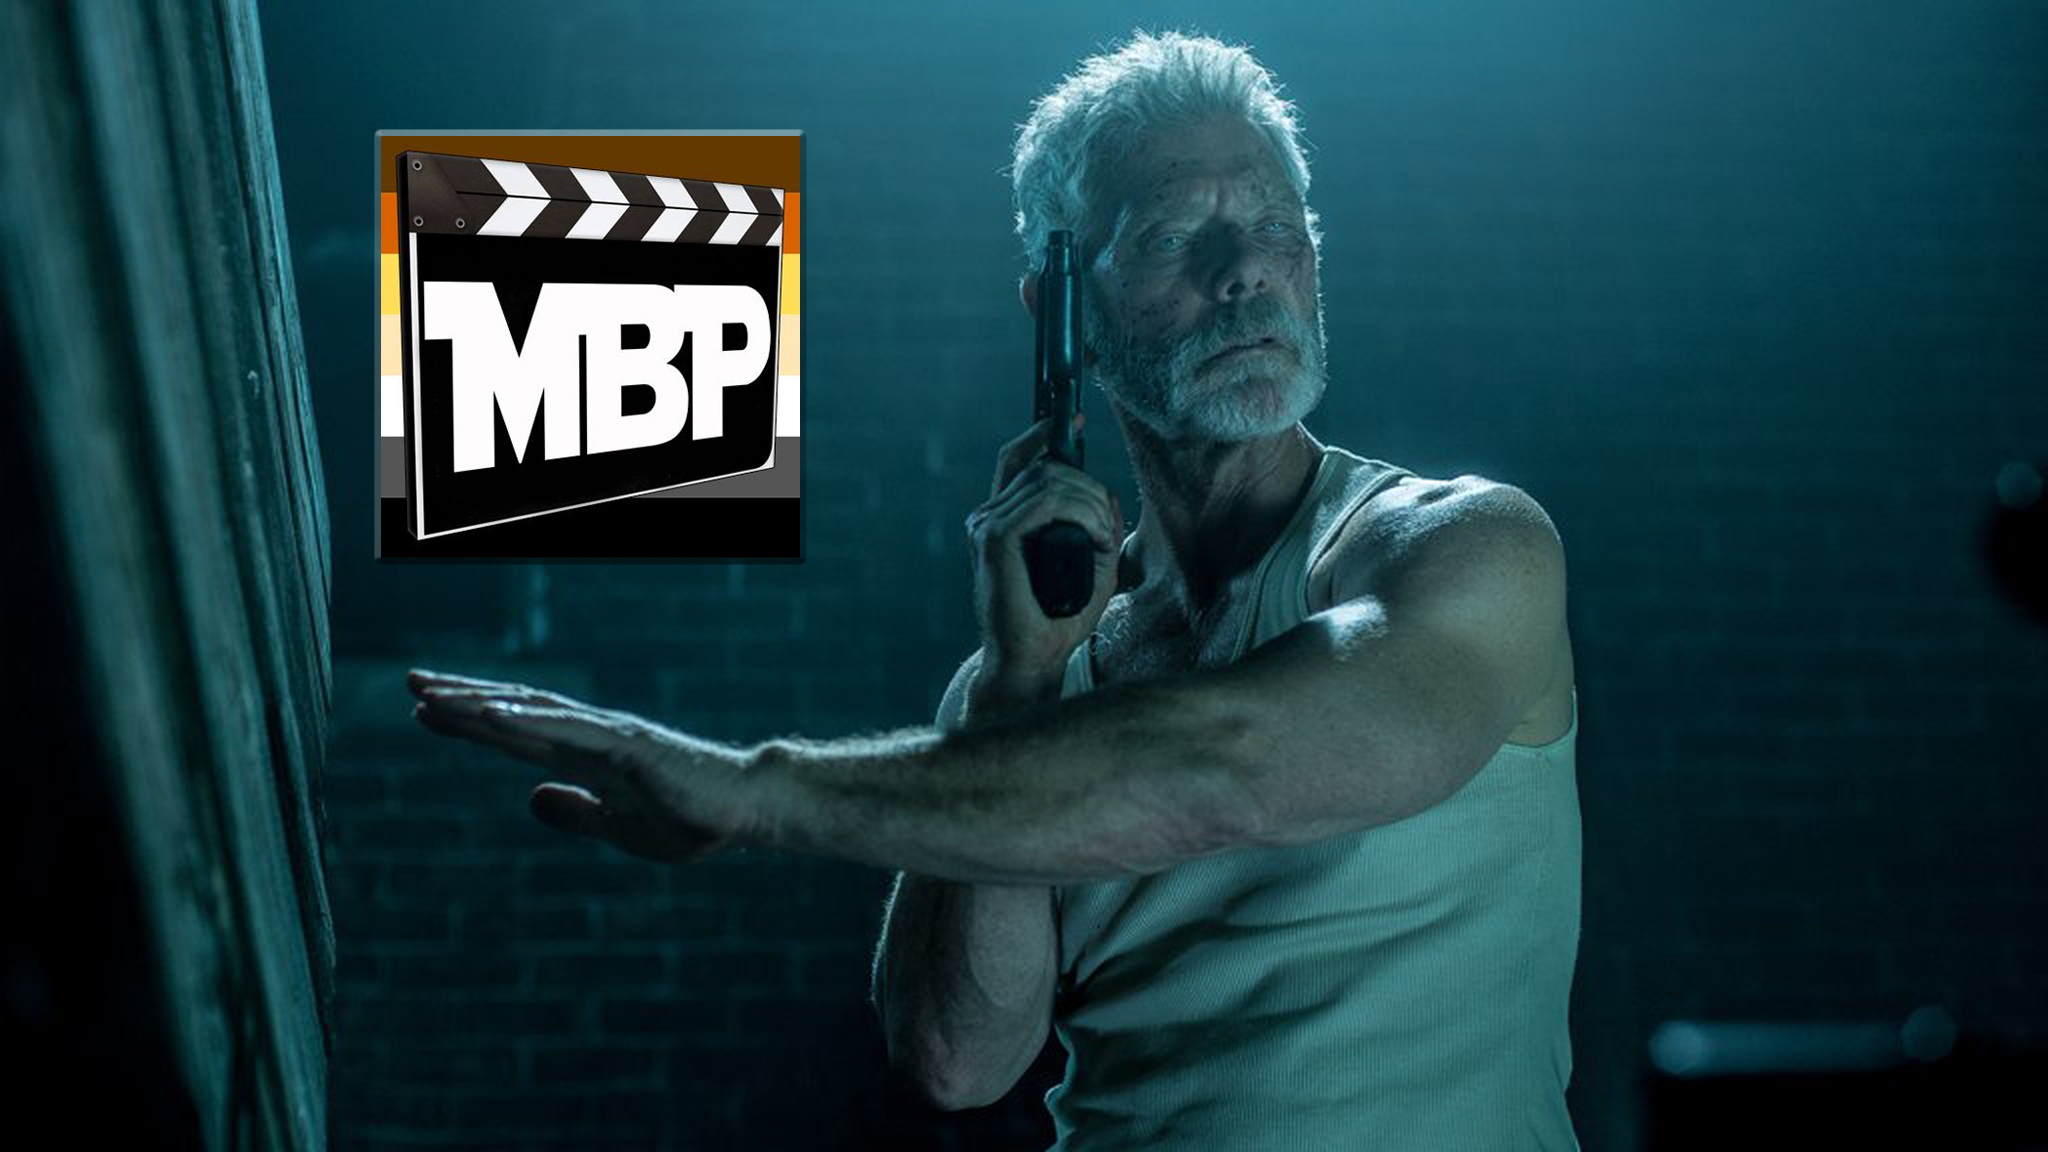 MBP e198 - 'Don't Breathe' (9/9/16)    Will 'Don't Breathe' leave you breathless? Or is this horror/thriller nothing but hot air? Tune in to find out! Click through to listen.